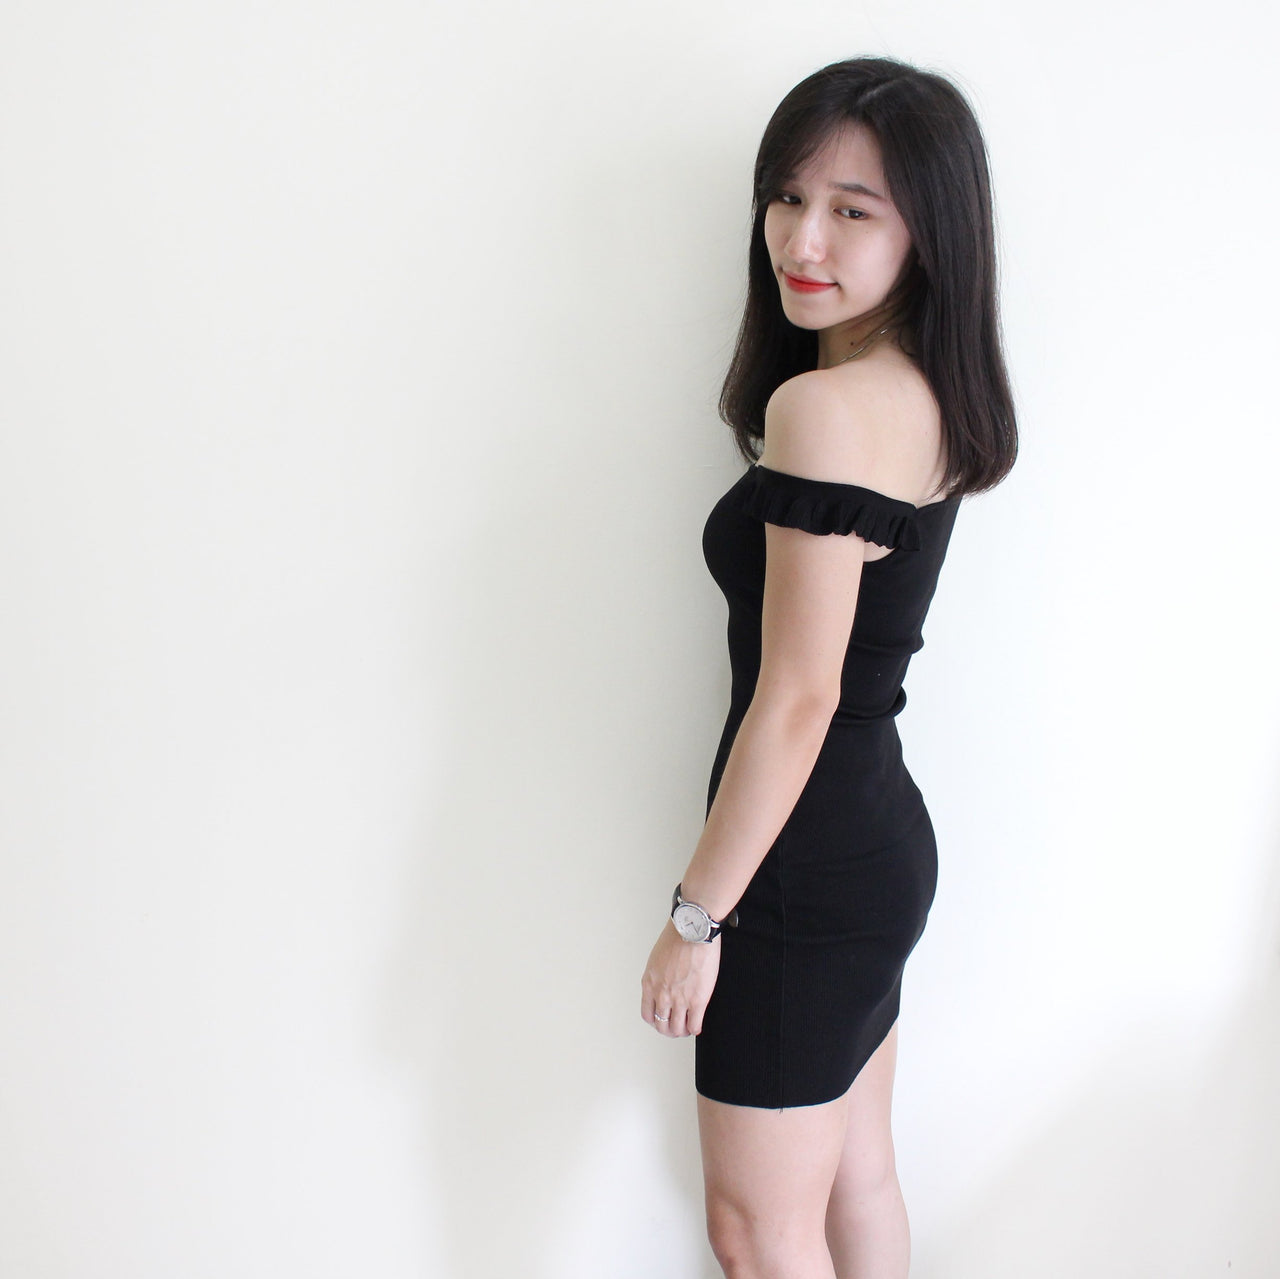 Lola Bodycon Dress - LovelyMadness Clothing Online Fashion Malaysia